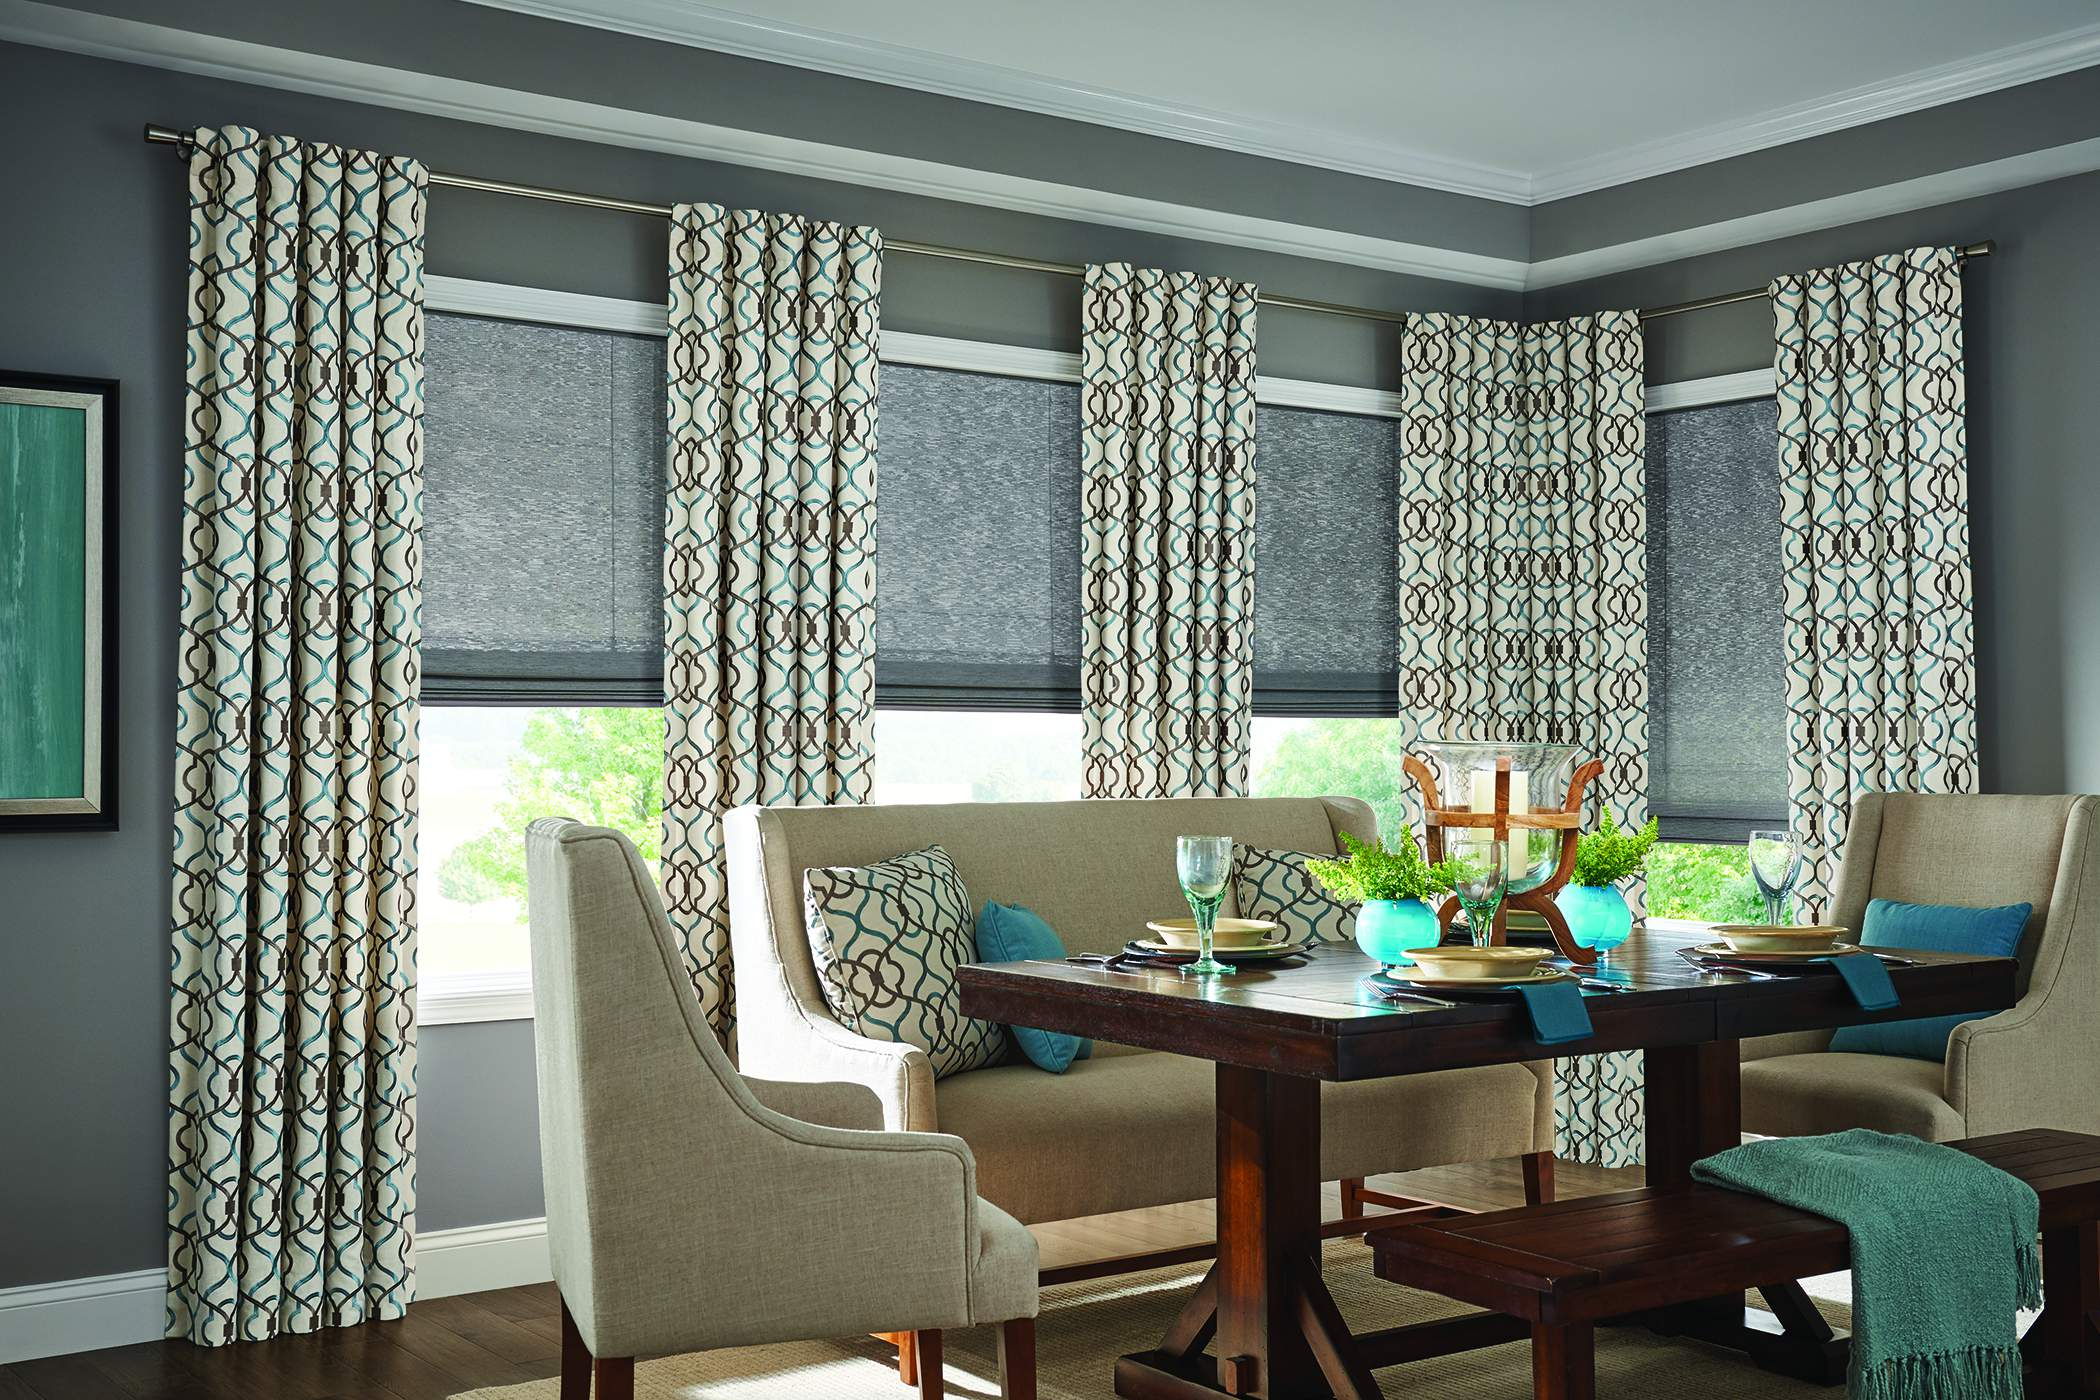 Old style roman shades with back tab panels